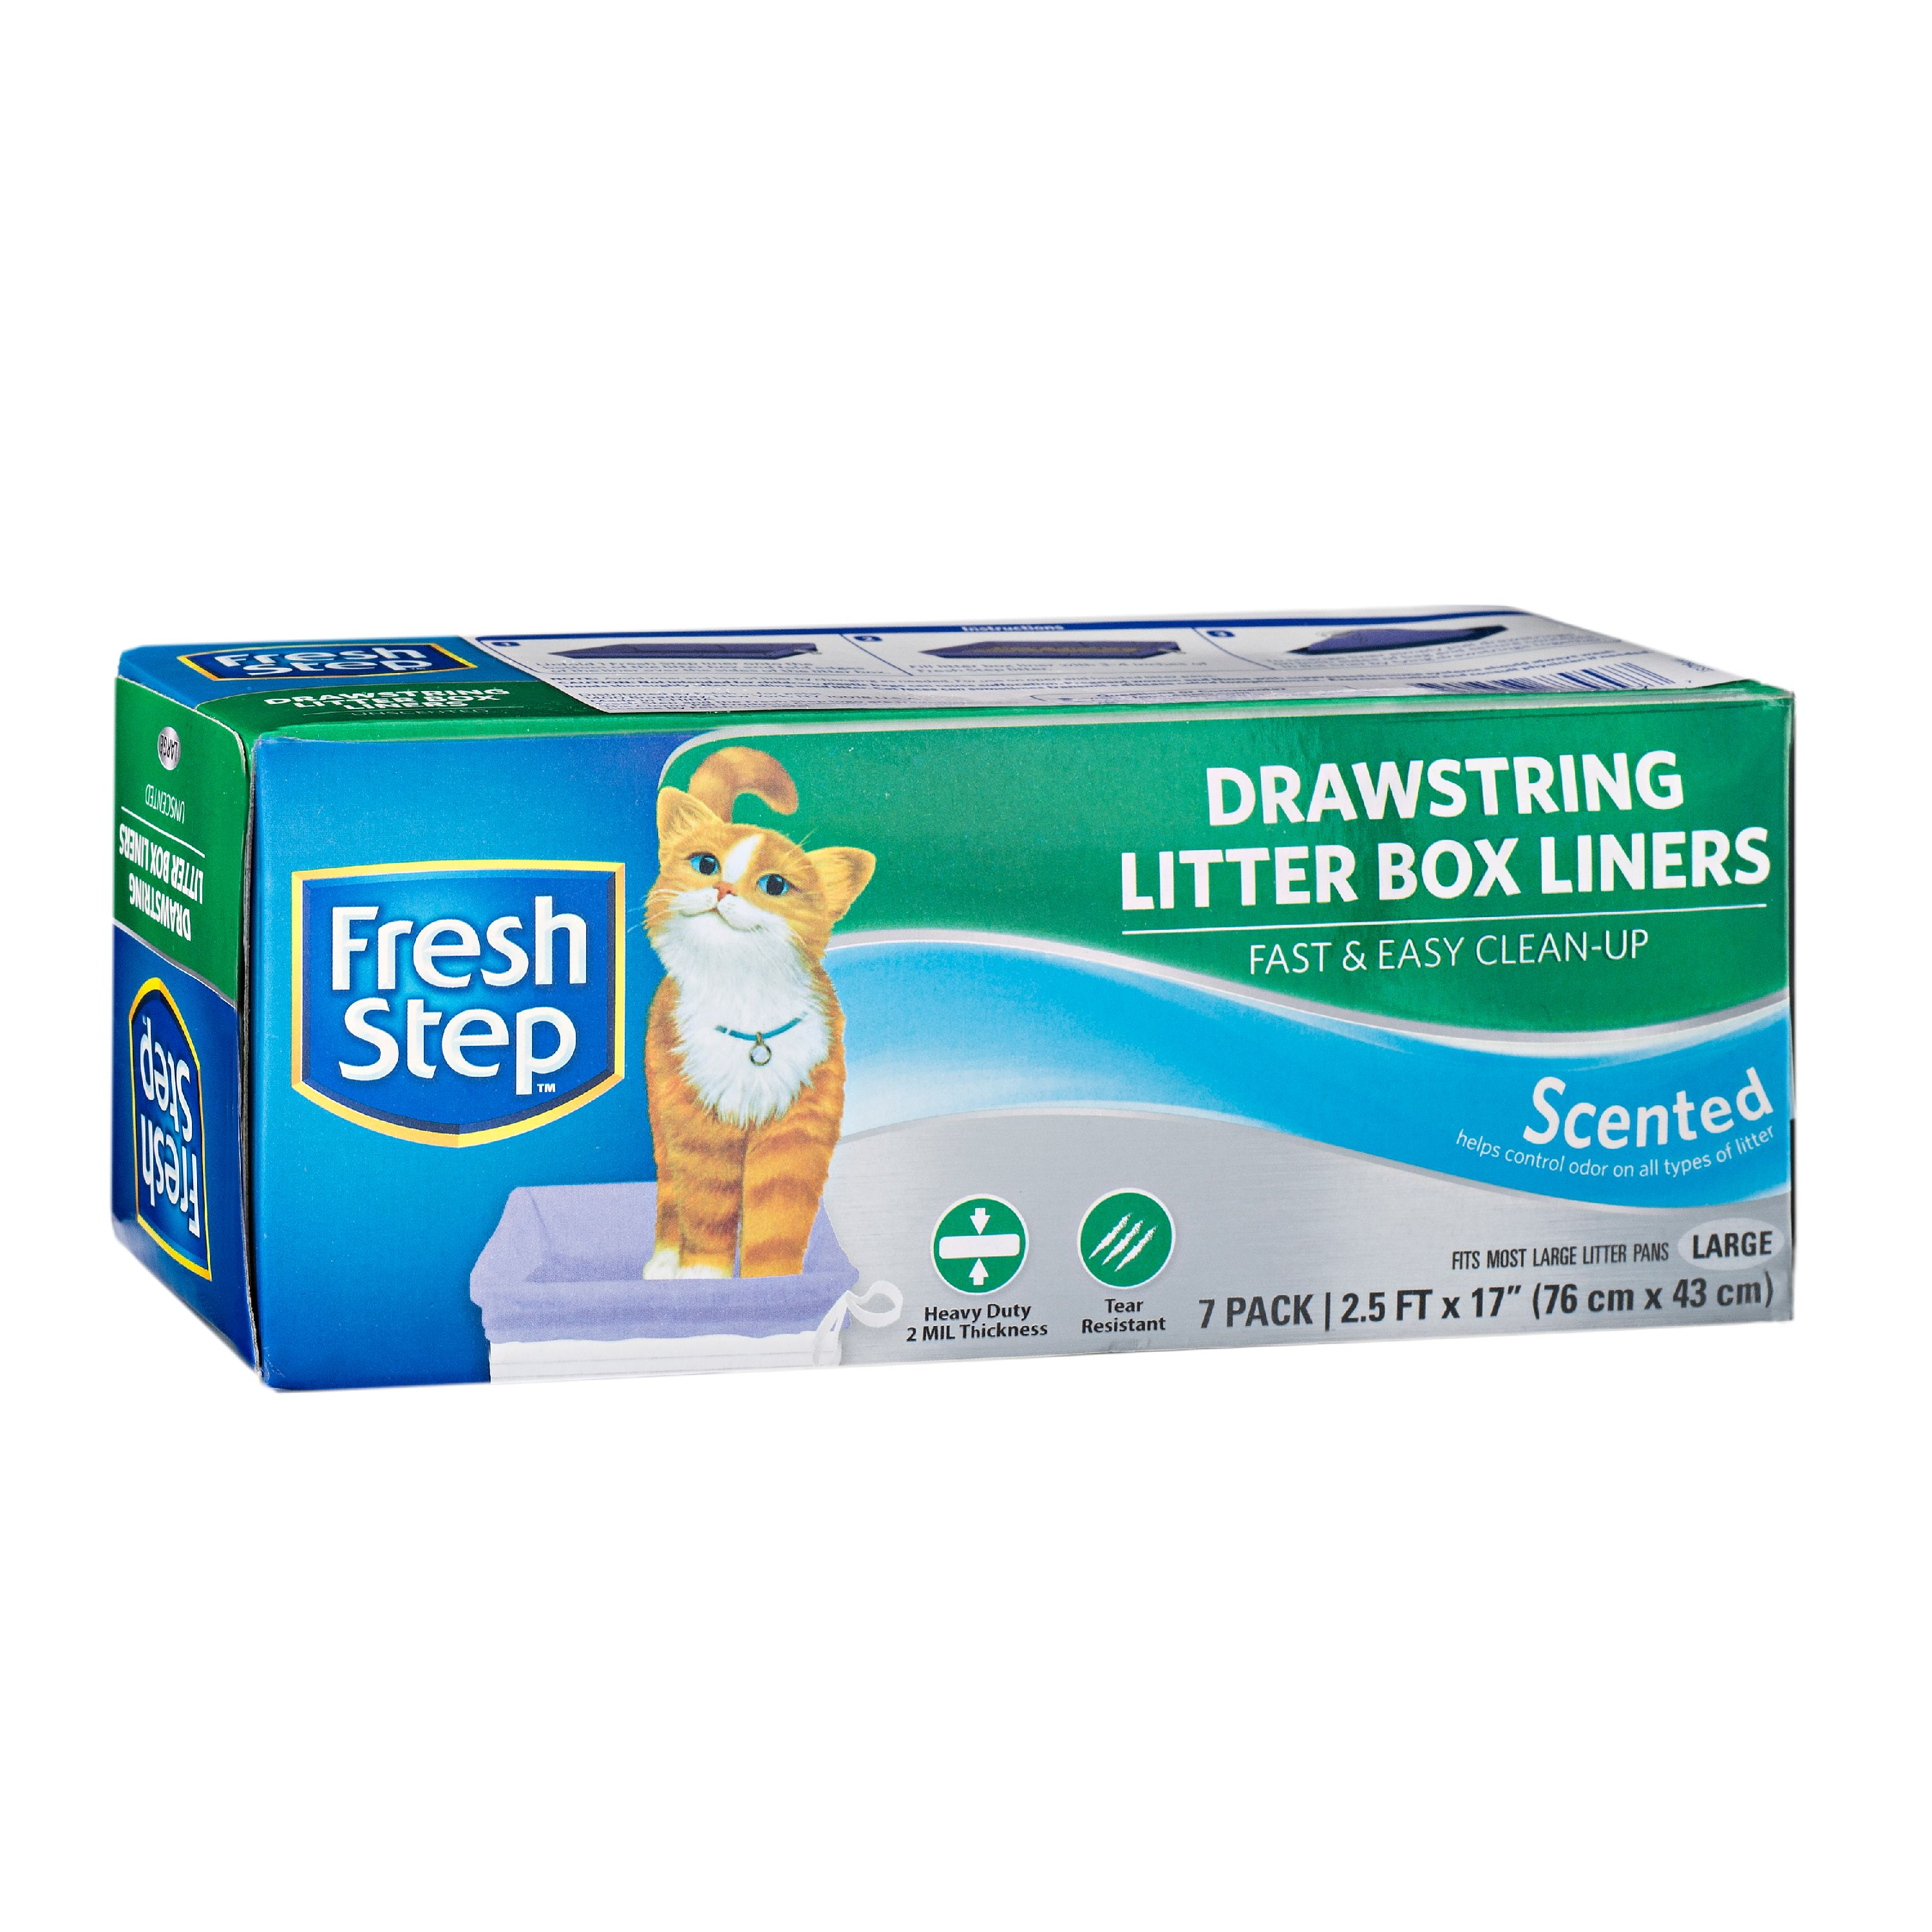 Fresh Step, Scented Cat Litter Box Liners With Drawstring, Large, 7 count